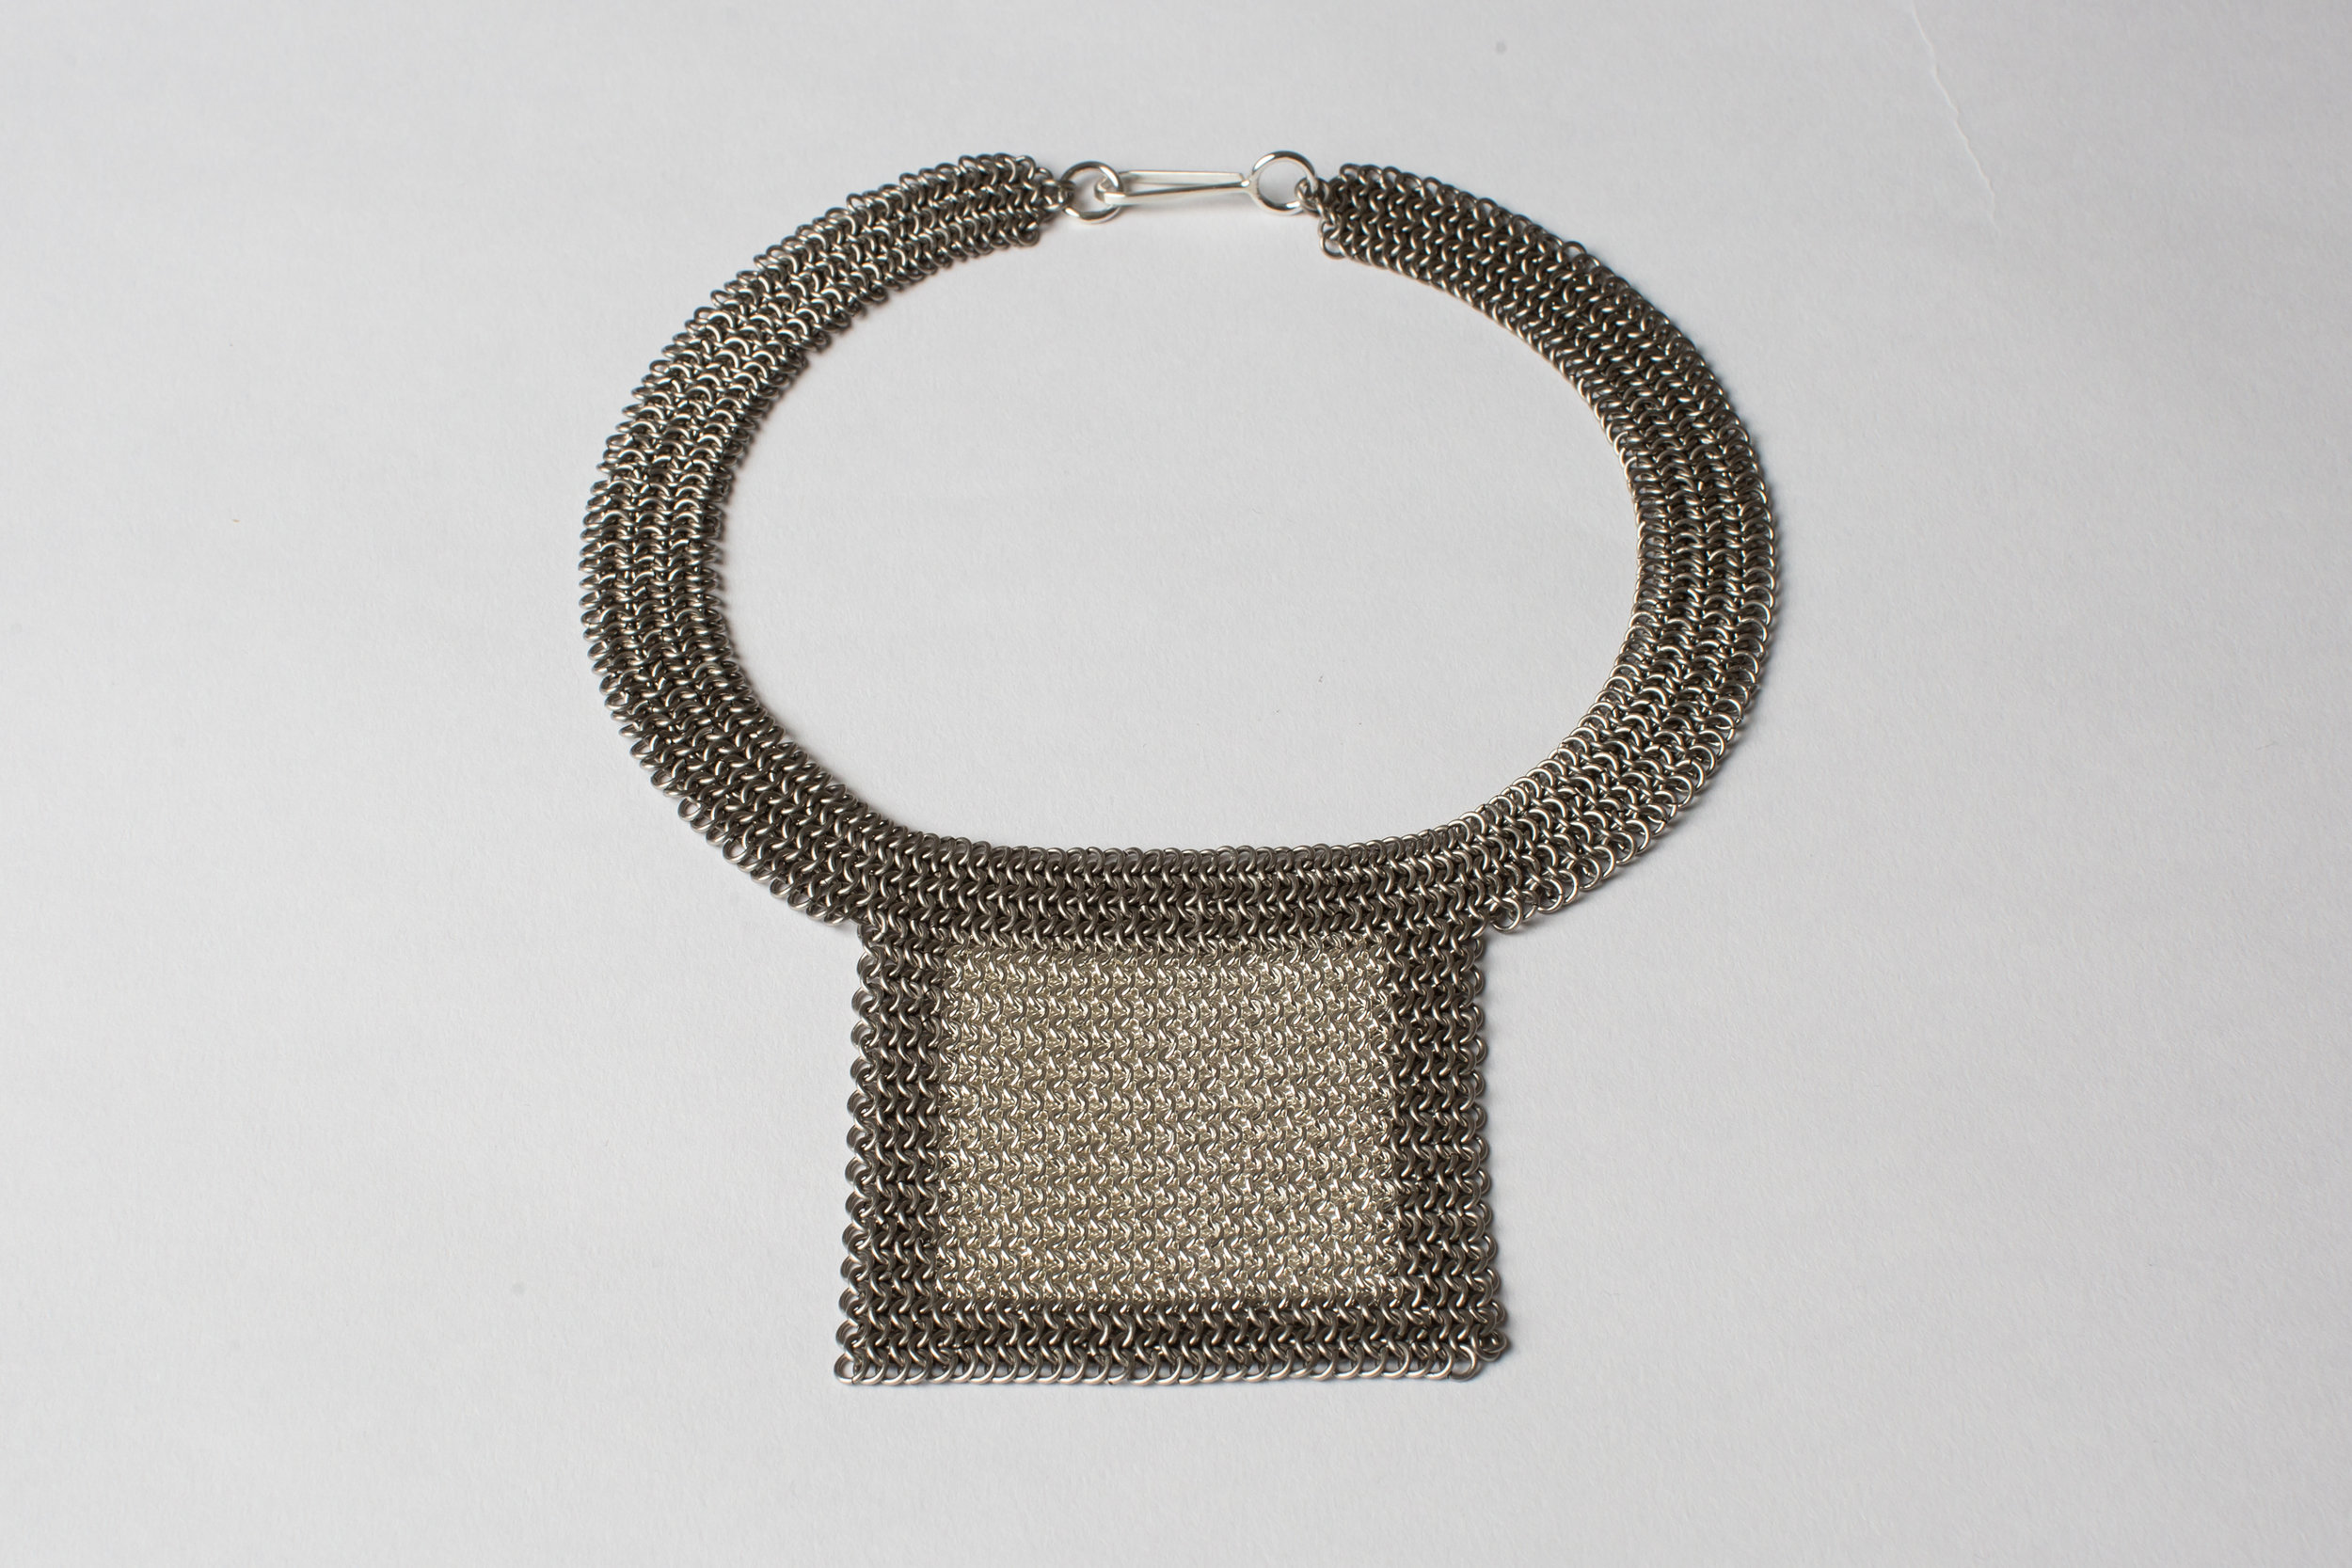 Silver Square Necklace (series 1) in Silver and Titanium chainmail